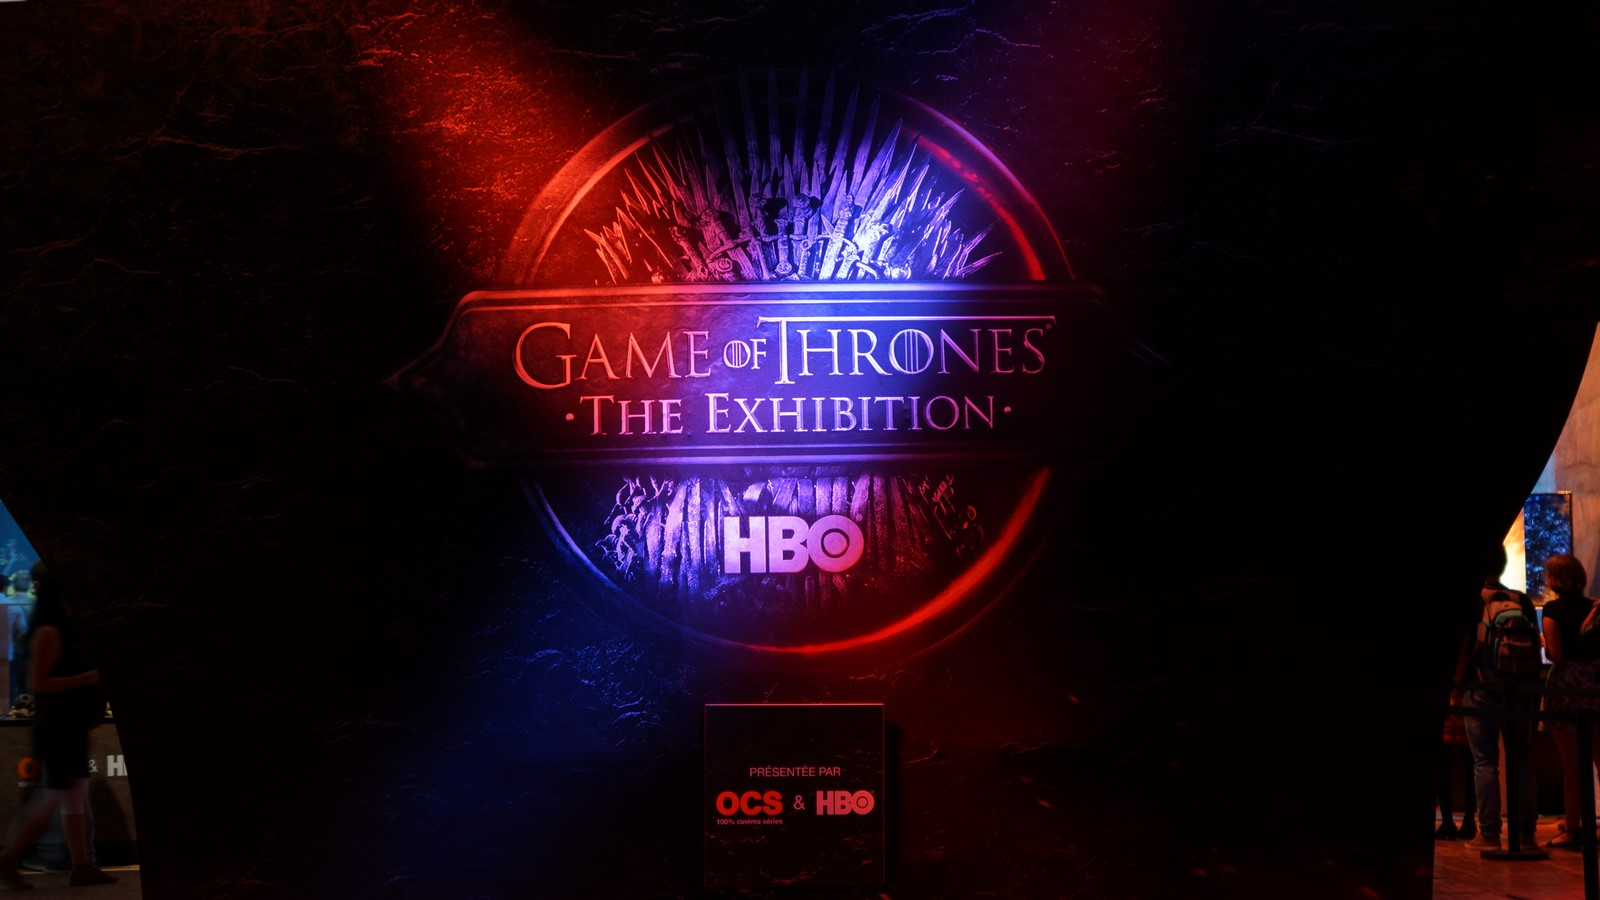 [Expo] Game of Thrones — The exhibition